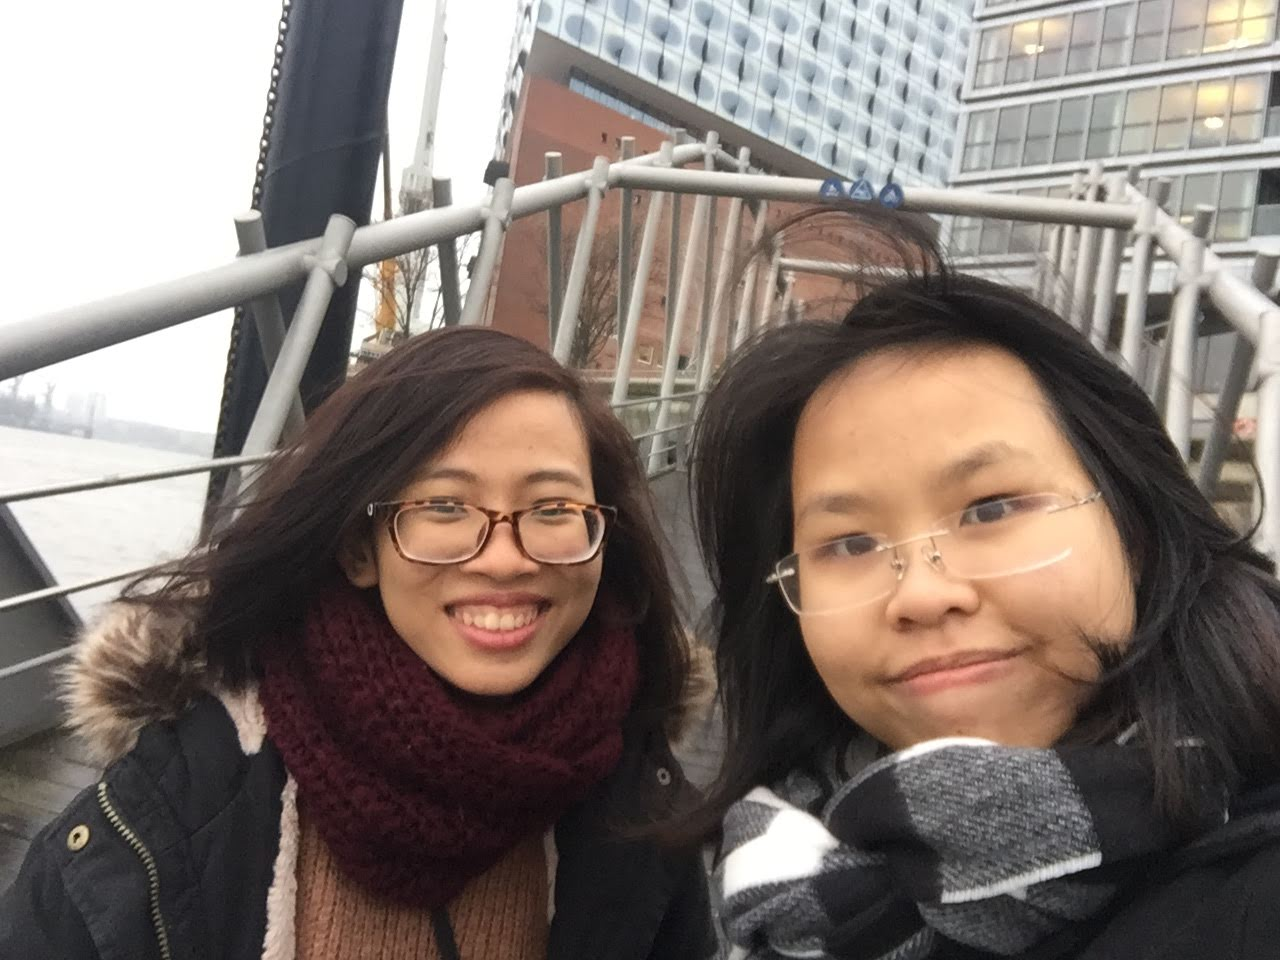 Reunite with Nhan Vo in Reutlingen - Ha Nguyen - Winter Exchange Sem 2018-2019